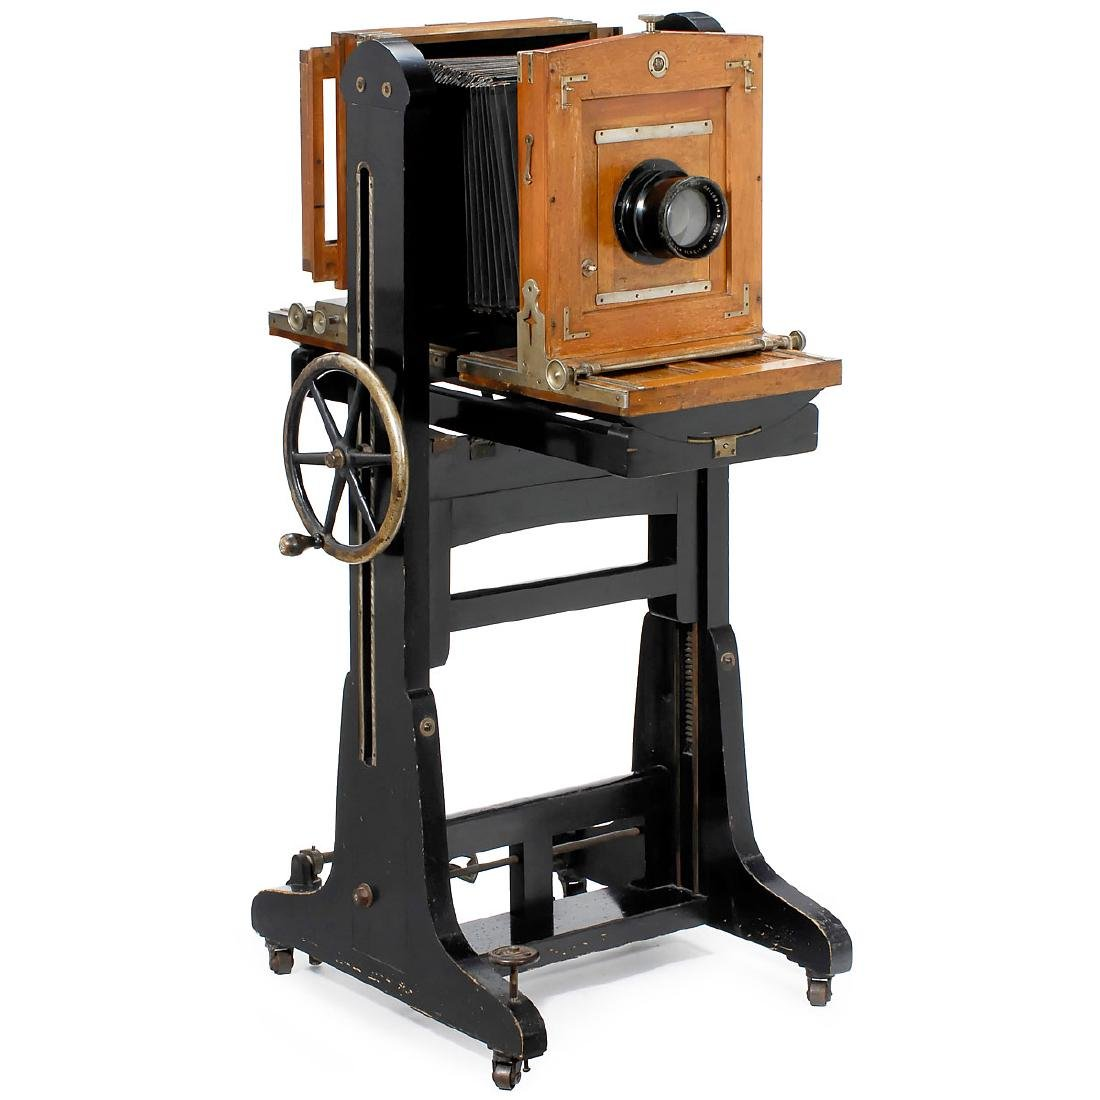 Atelier Camera by Union Paris, c. 1910